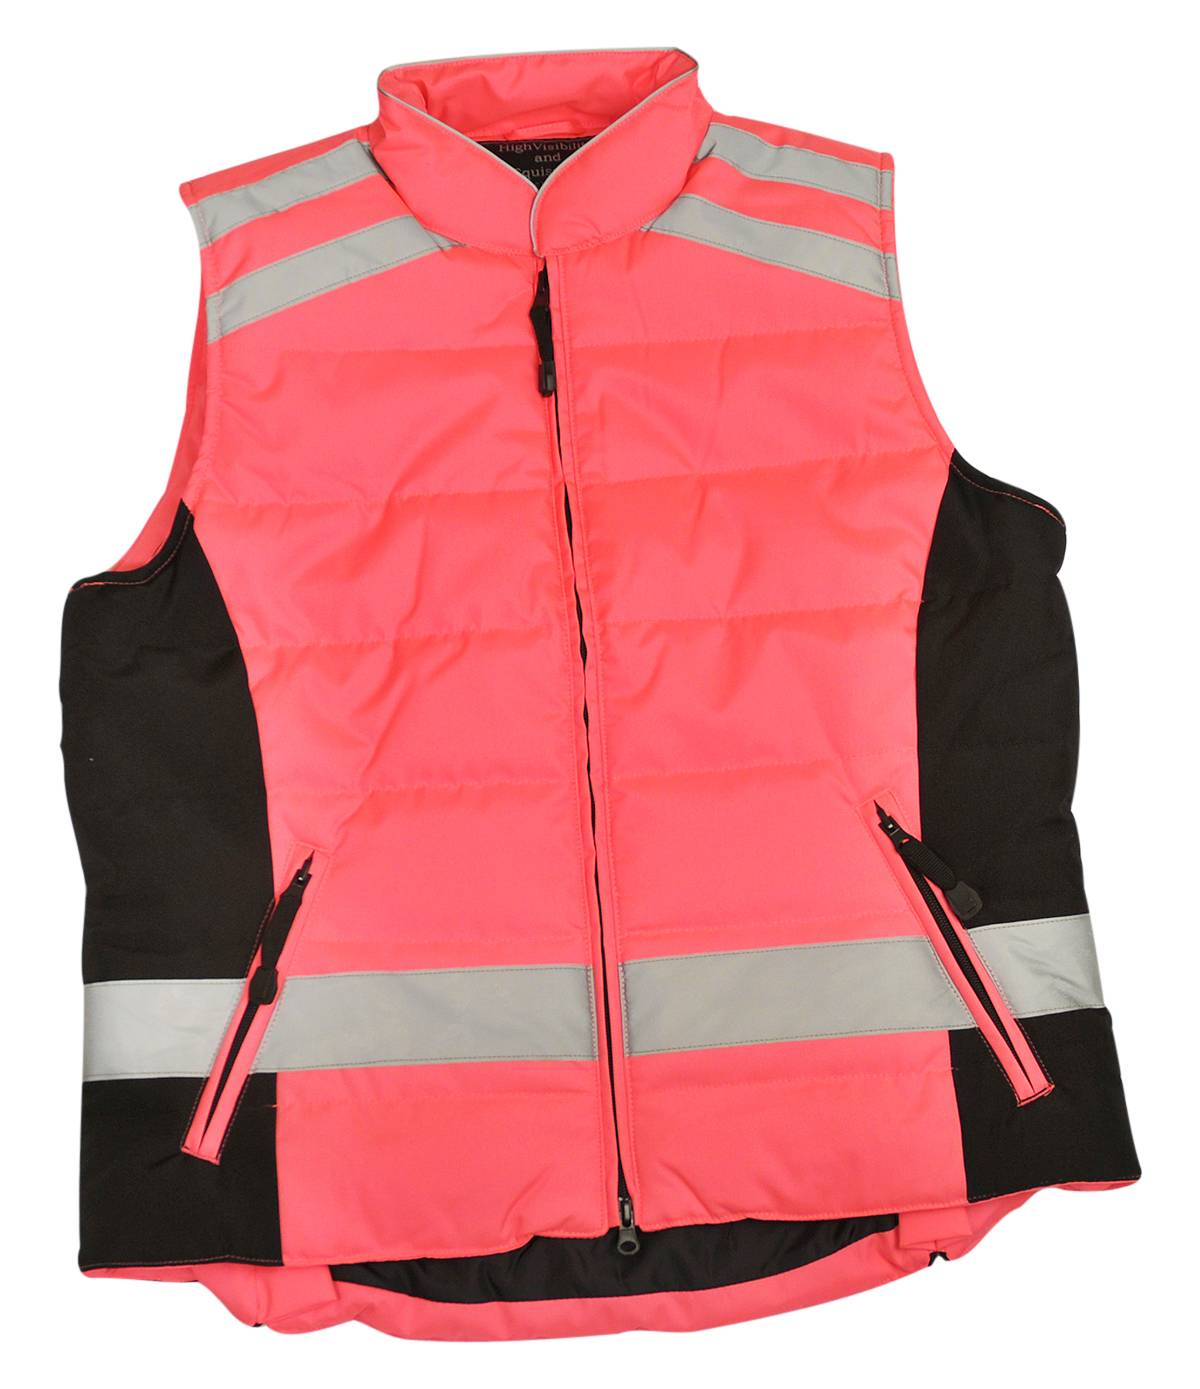 Equisafety Ladies' Reflective Gilet Vest